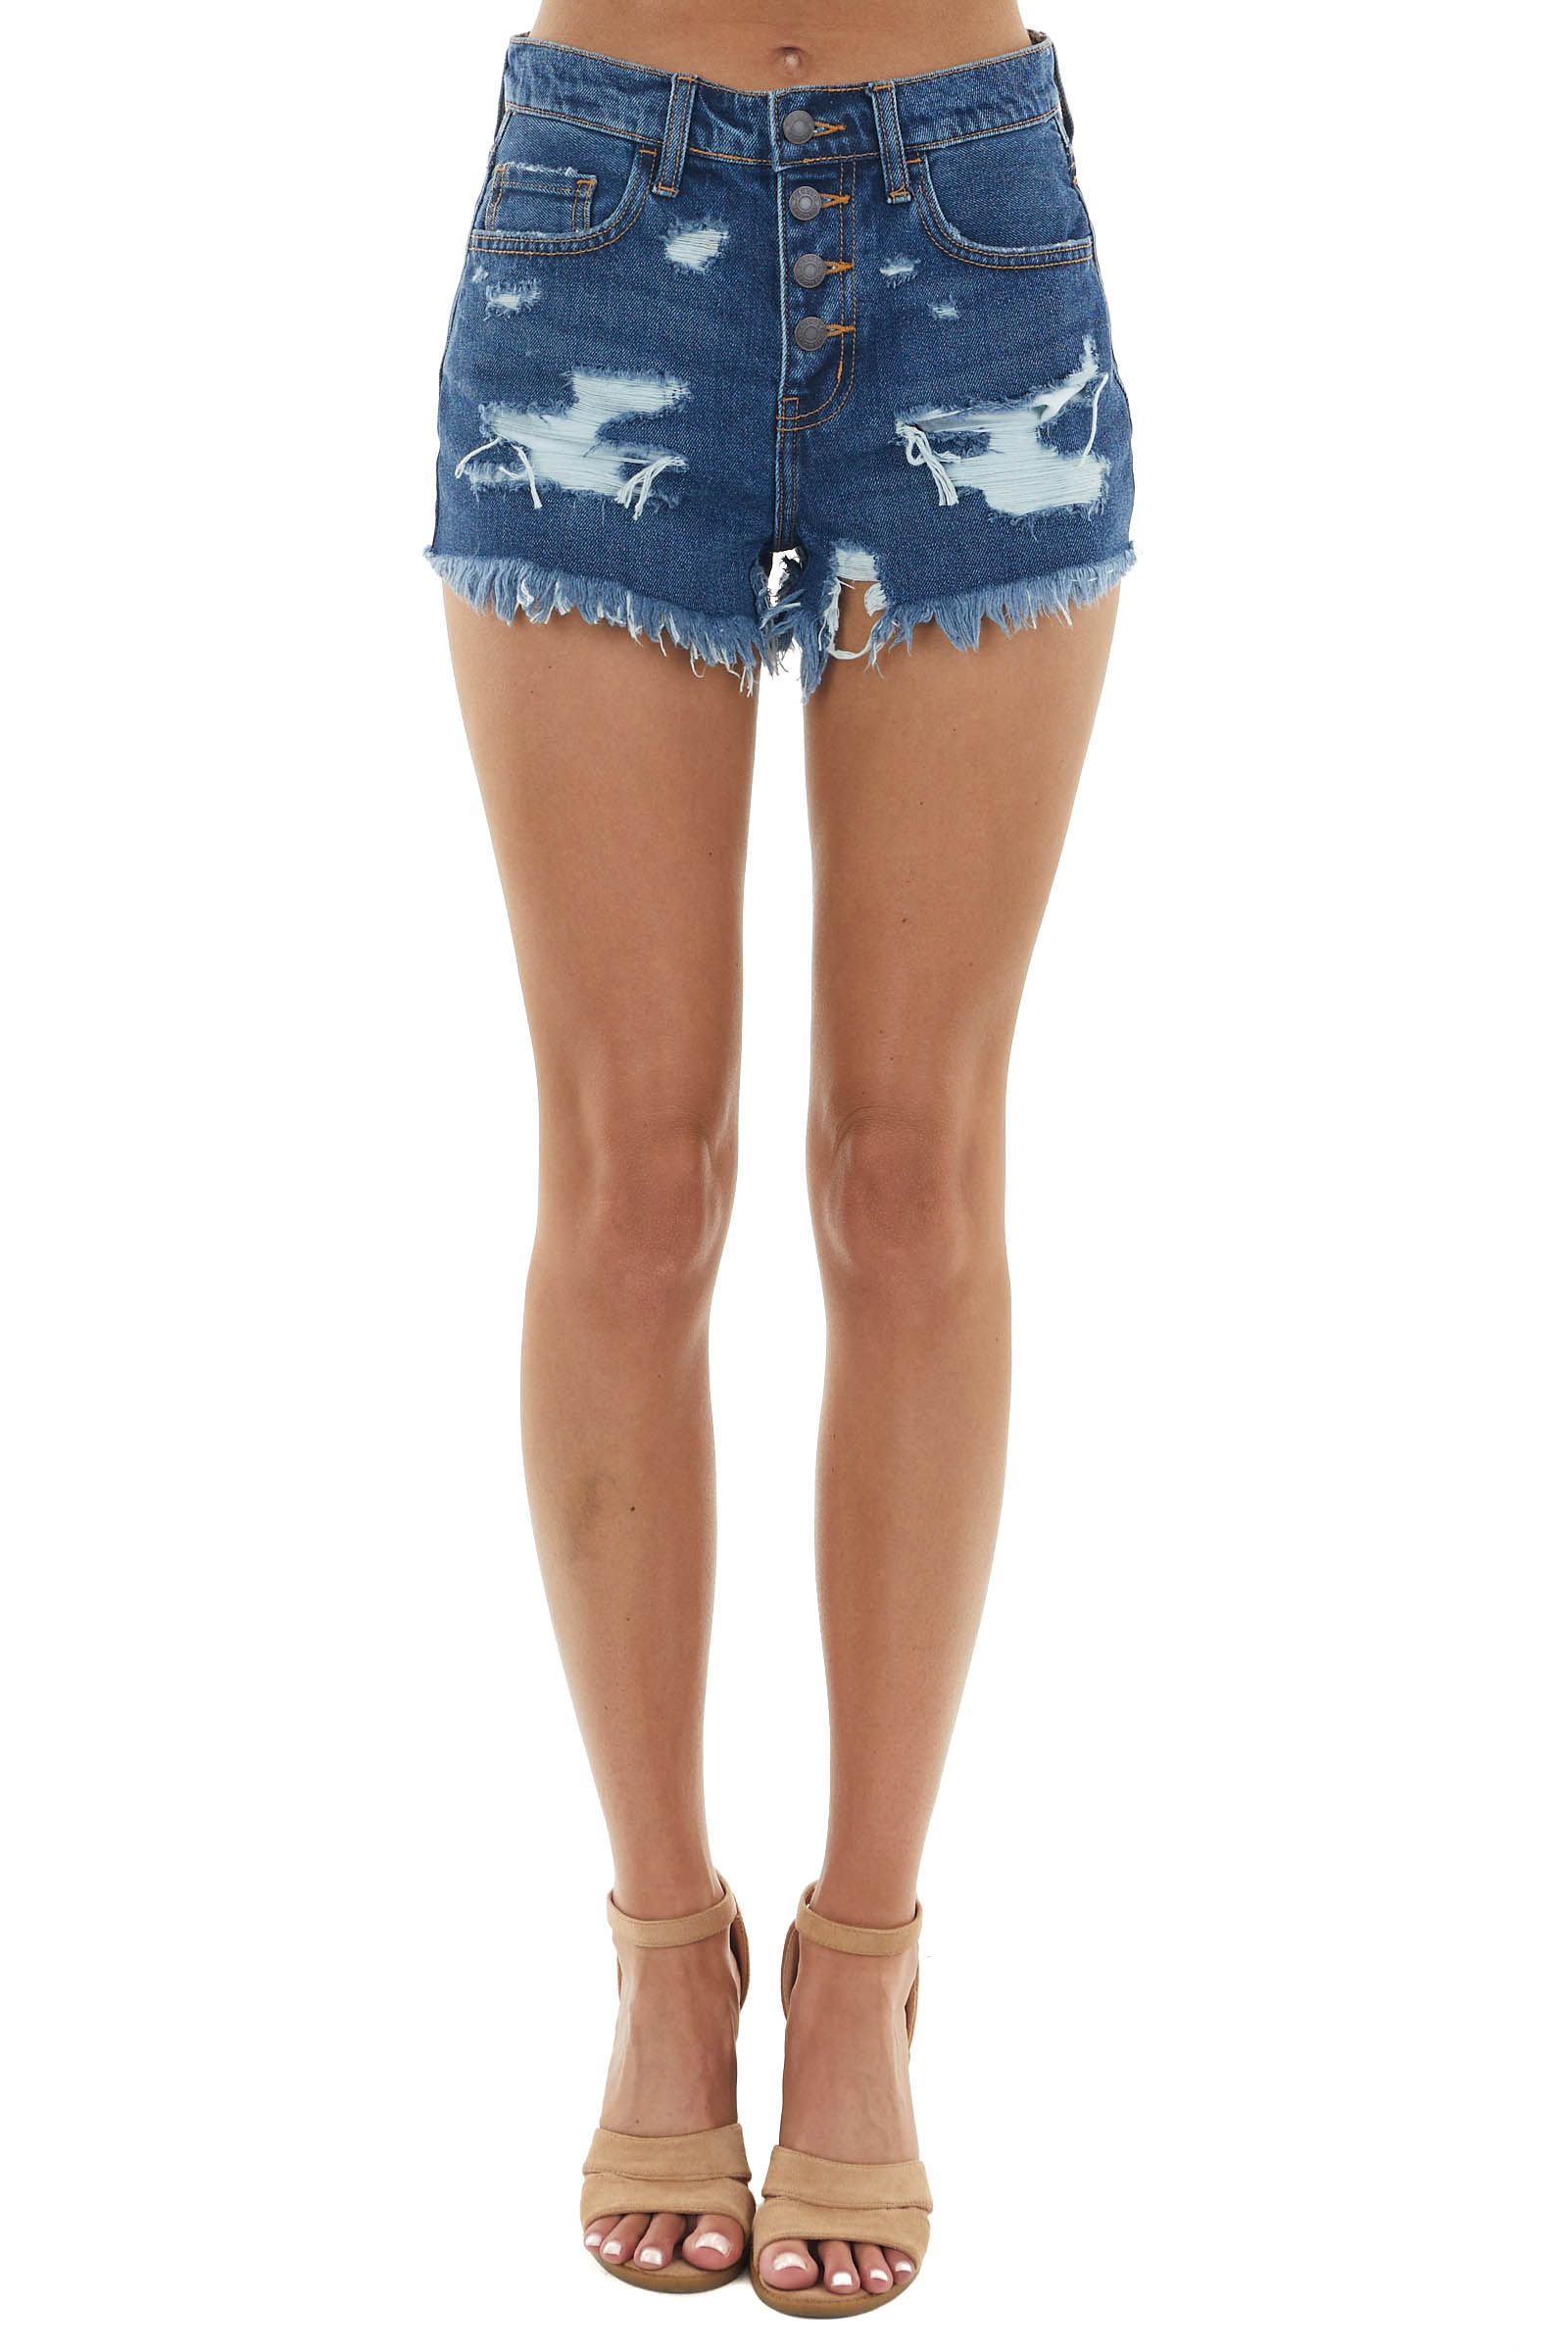 Dark Wash High Rise Distressed Shorts with Button Closures